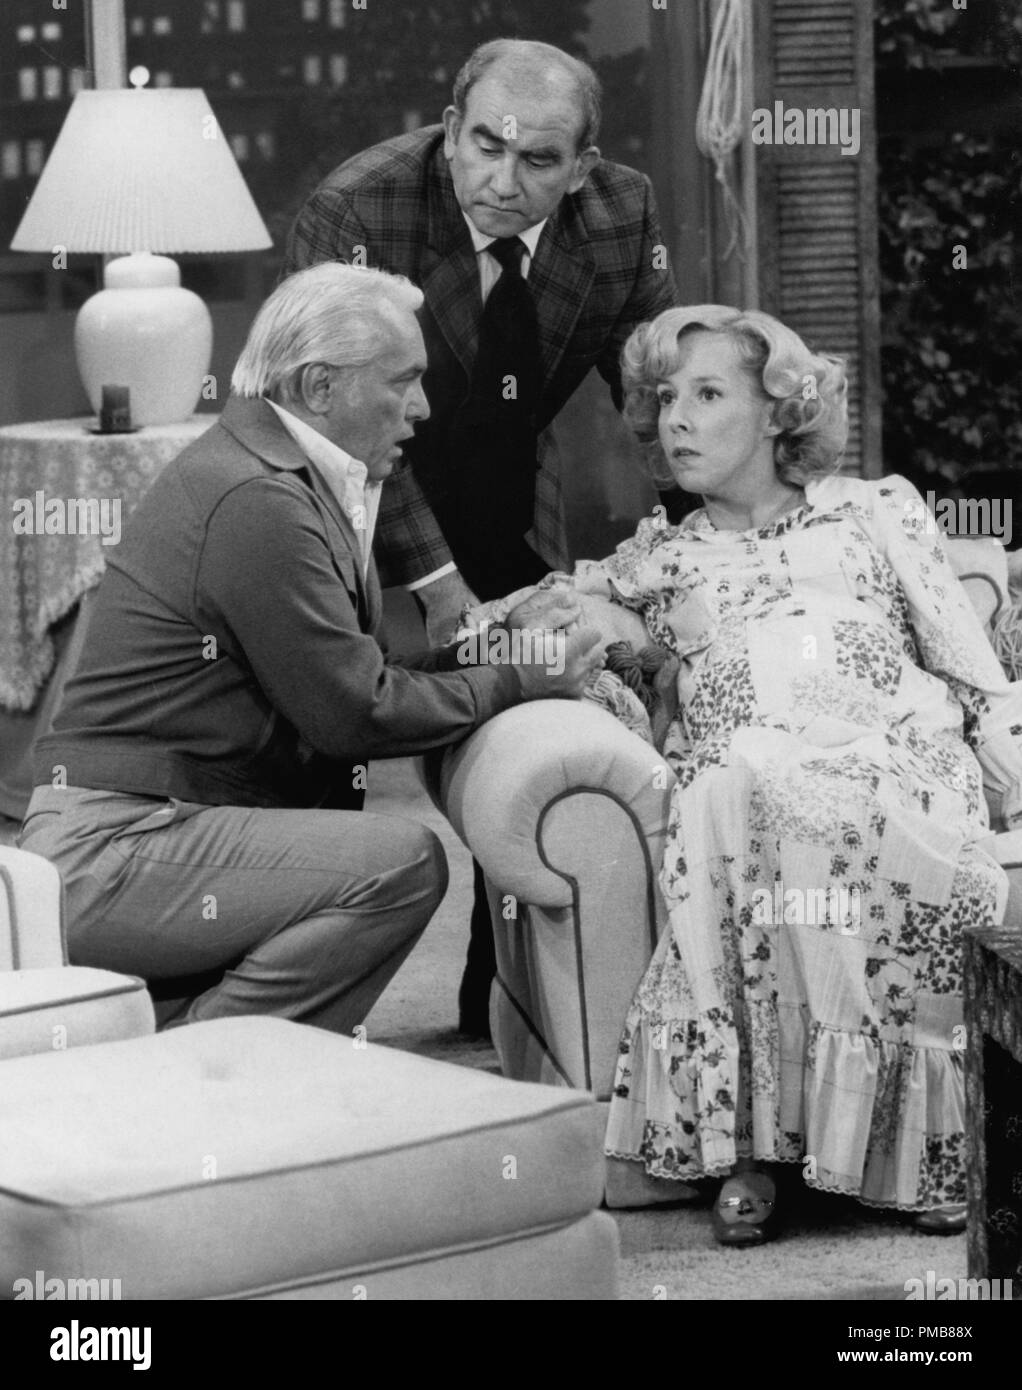 Ted Knight, Edward Asner, Georgia Engel  'The Mary Tyler Moore Show' (1970 - 1977) CBS File Reference # 32337_032THA - Stock Image